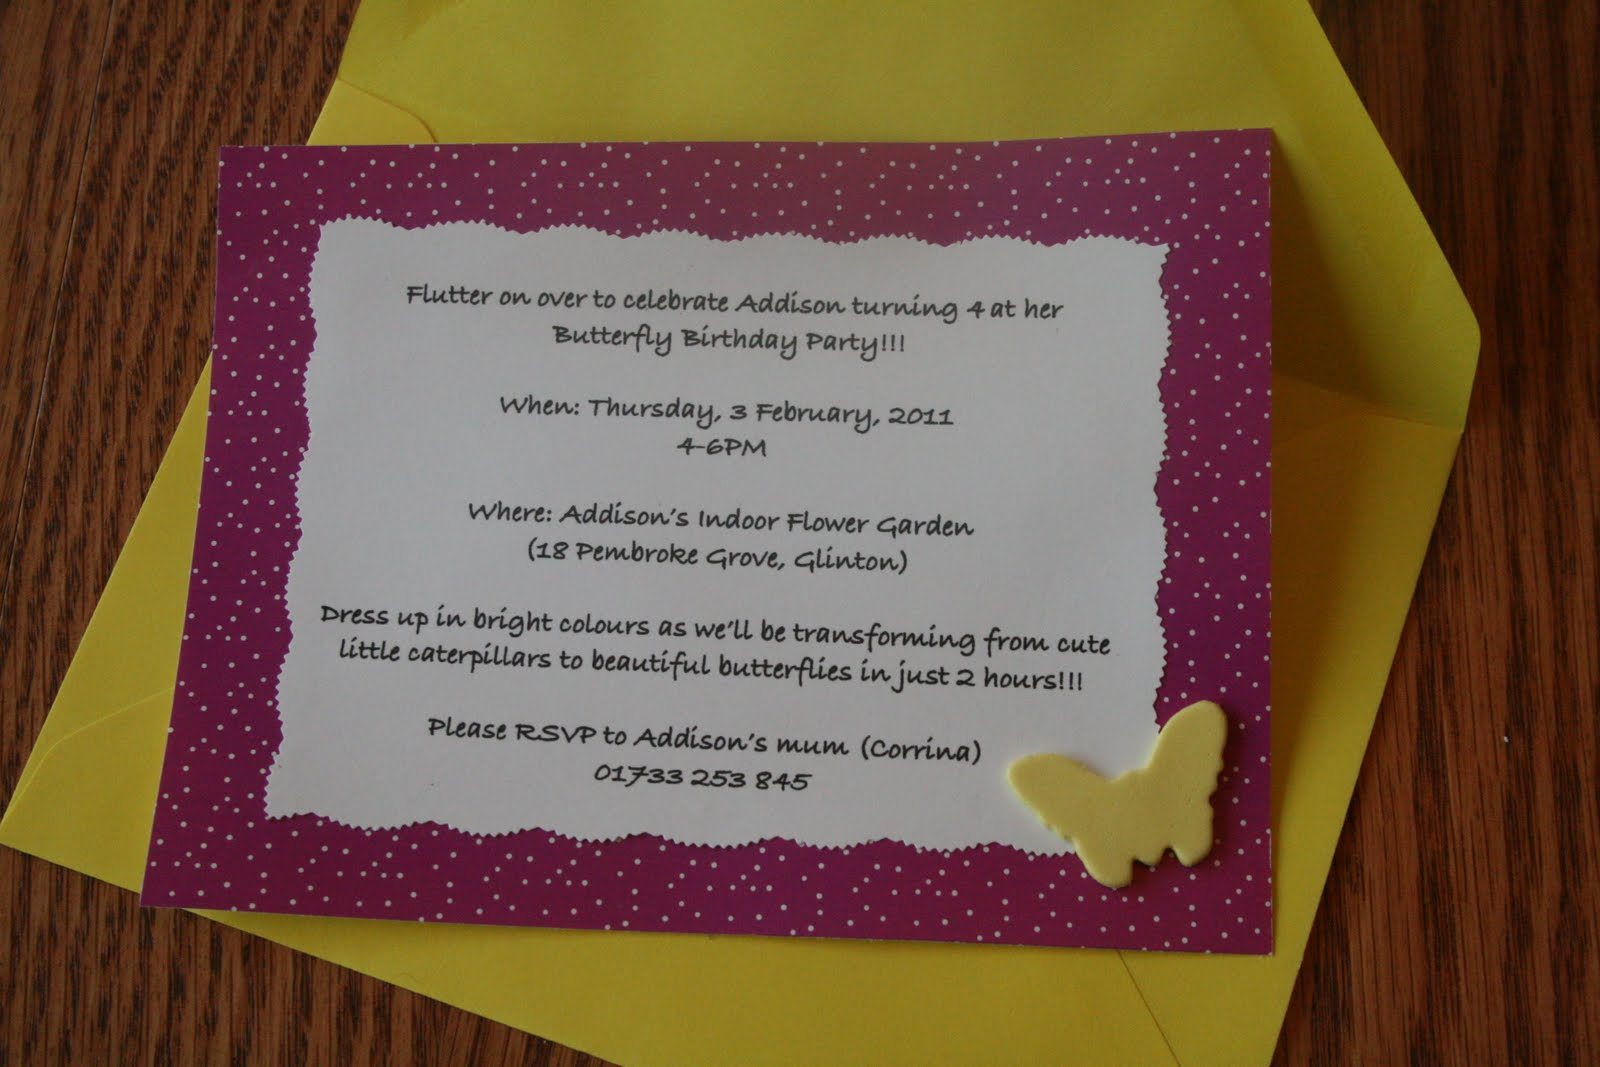 I Made The Invitations By Printing Off Wording On White Paper 4 Invites To One 85x11 Page Then Cut It Out With A Fun Edged Scissors